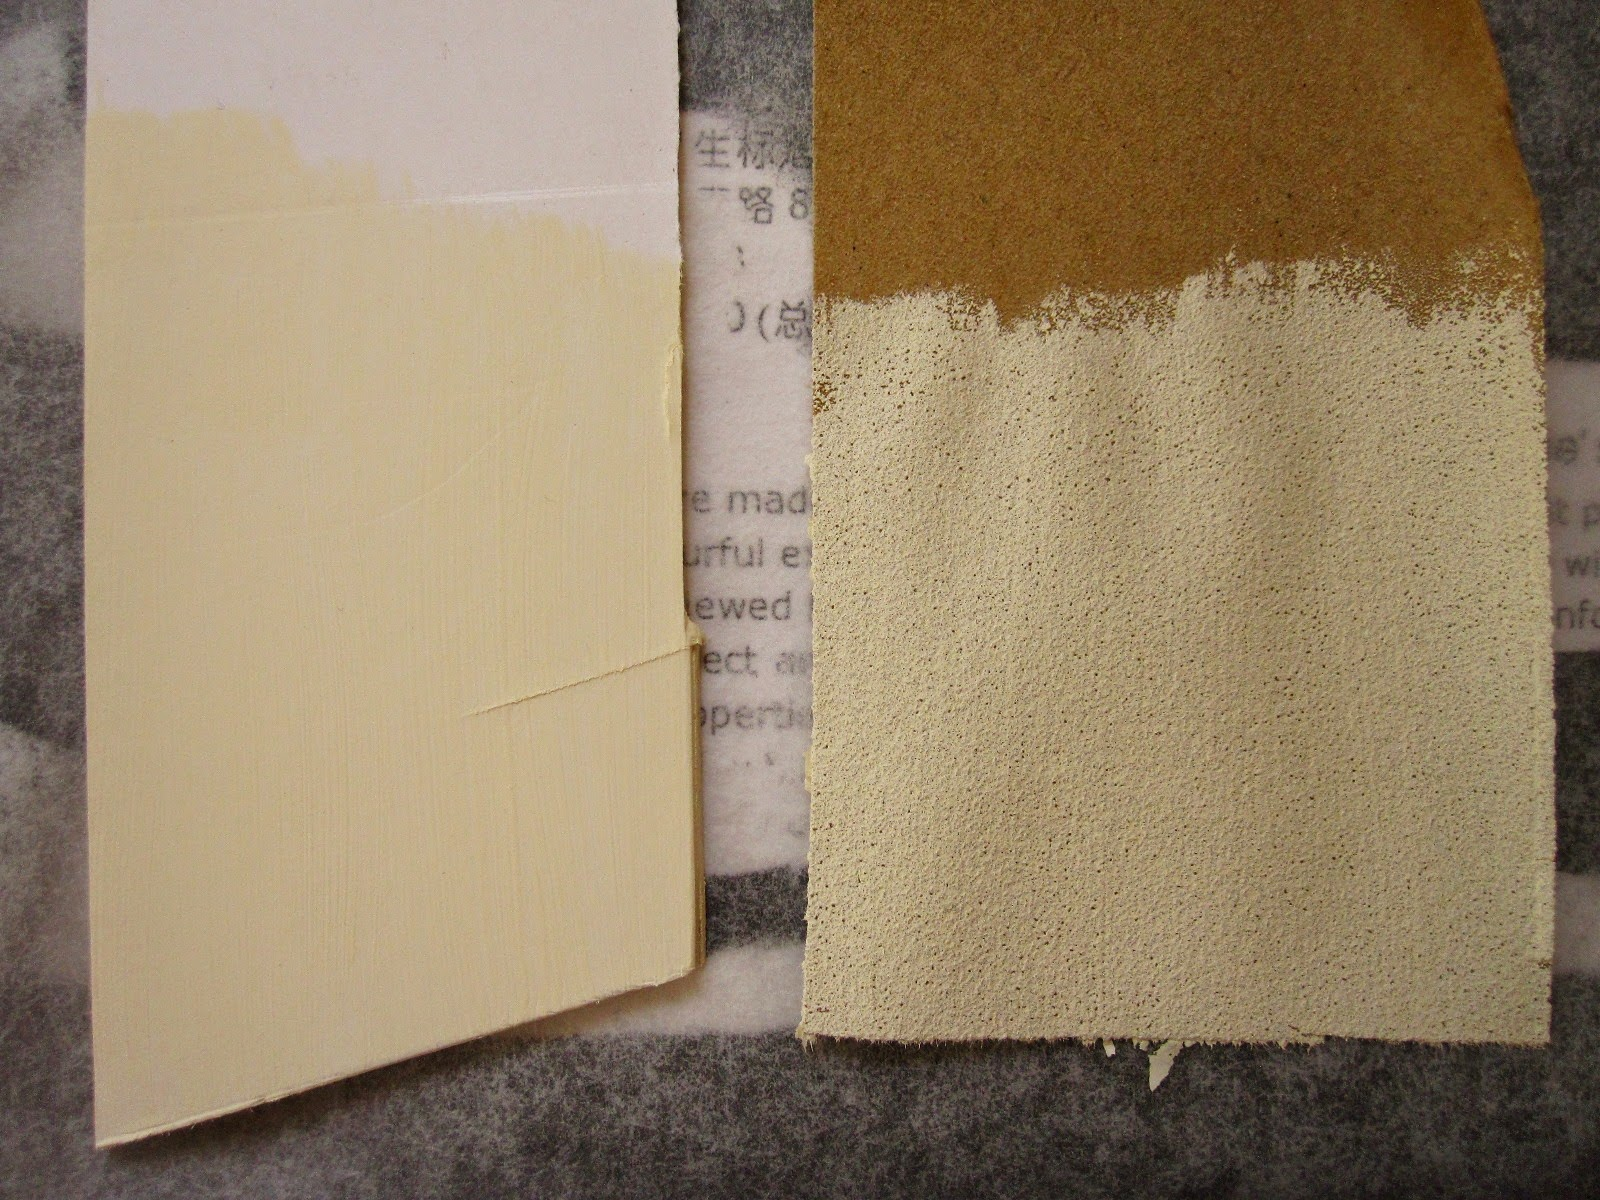 A sample iece of cardboard and a sample piece of sandpaper, both painted with cream paint, laid out to dry.